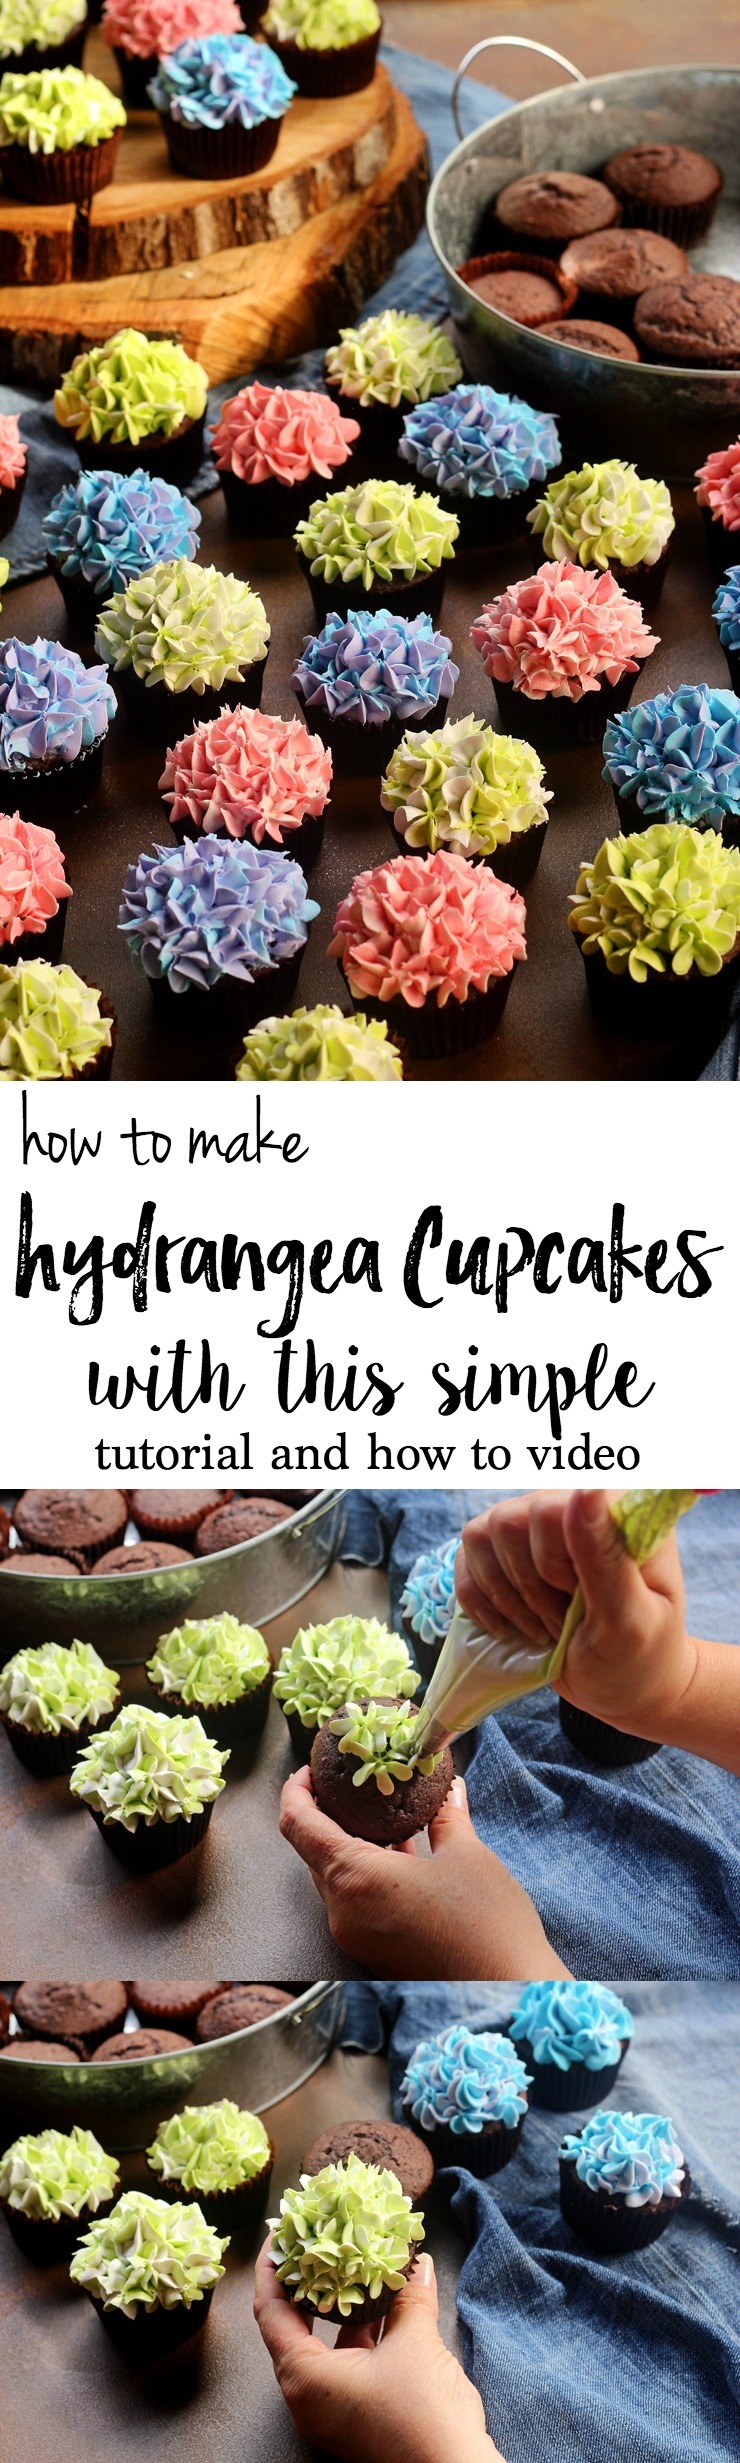 How to Make Hydrangea Cupcakes with this Simple Tutorial and and How to Video | The Bearfoot Baker